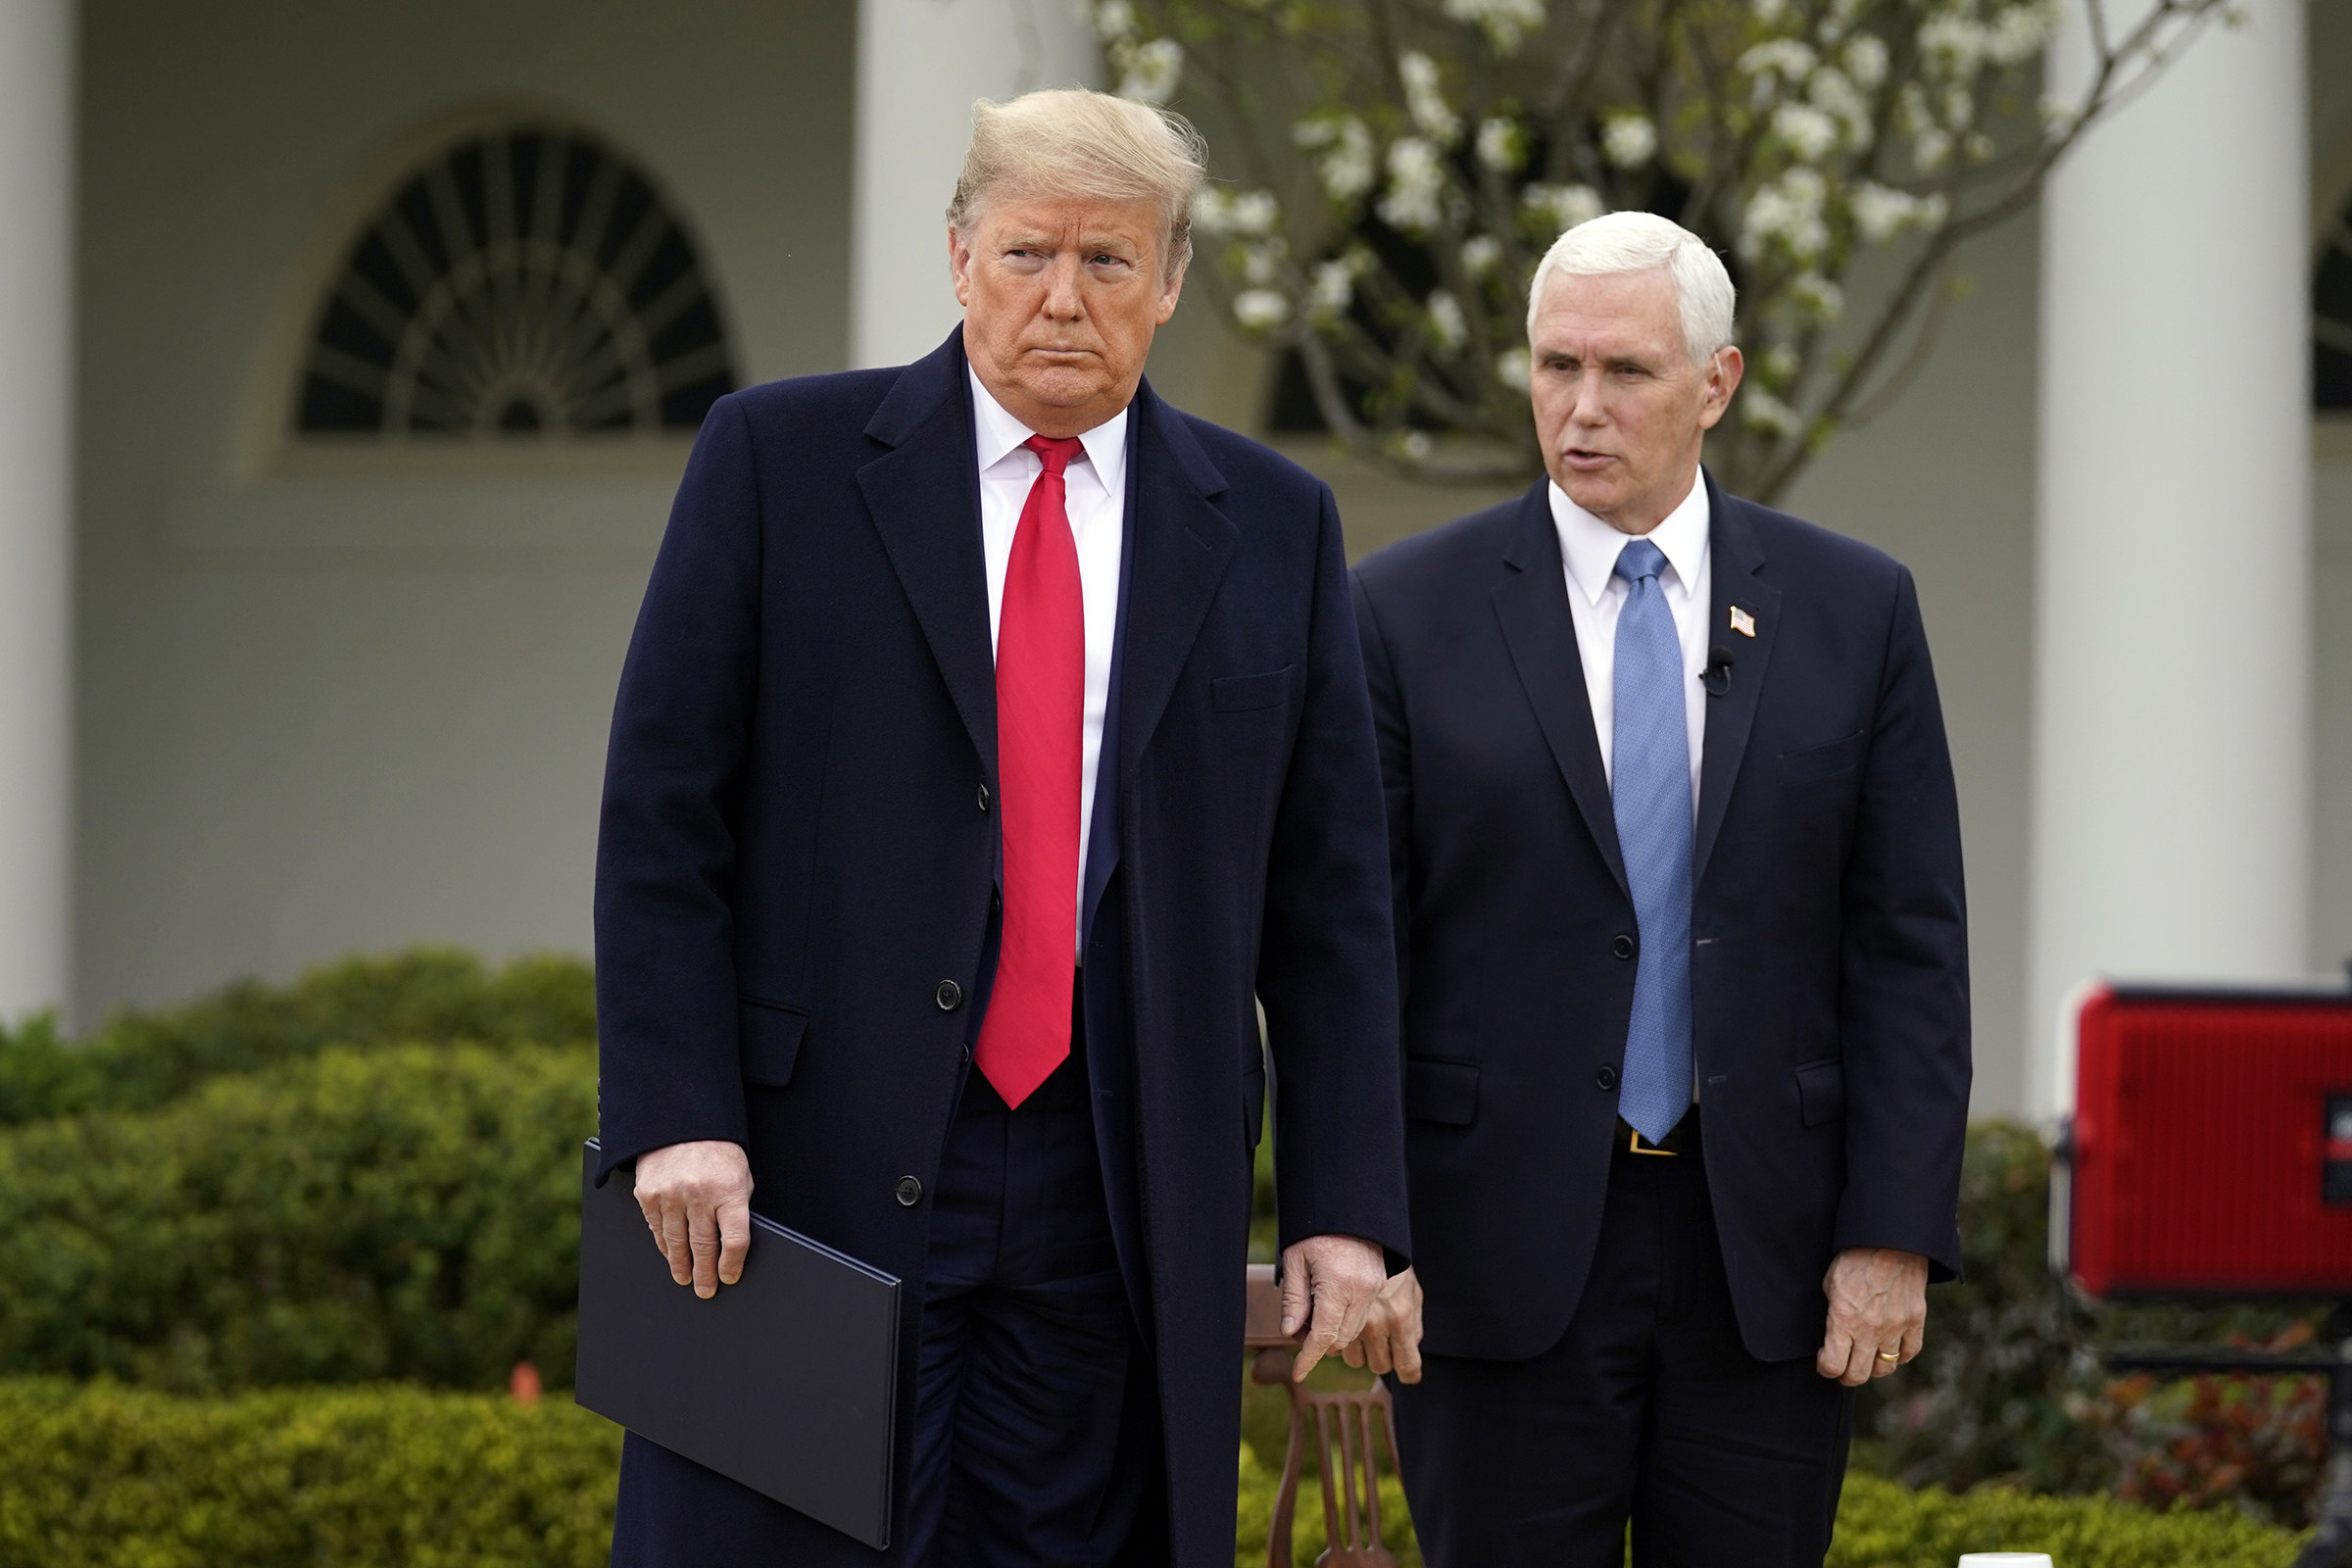 President Donald Trump speaks with Vice President Mike Pence at the White House, on March 24, 2020, in Washington.